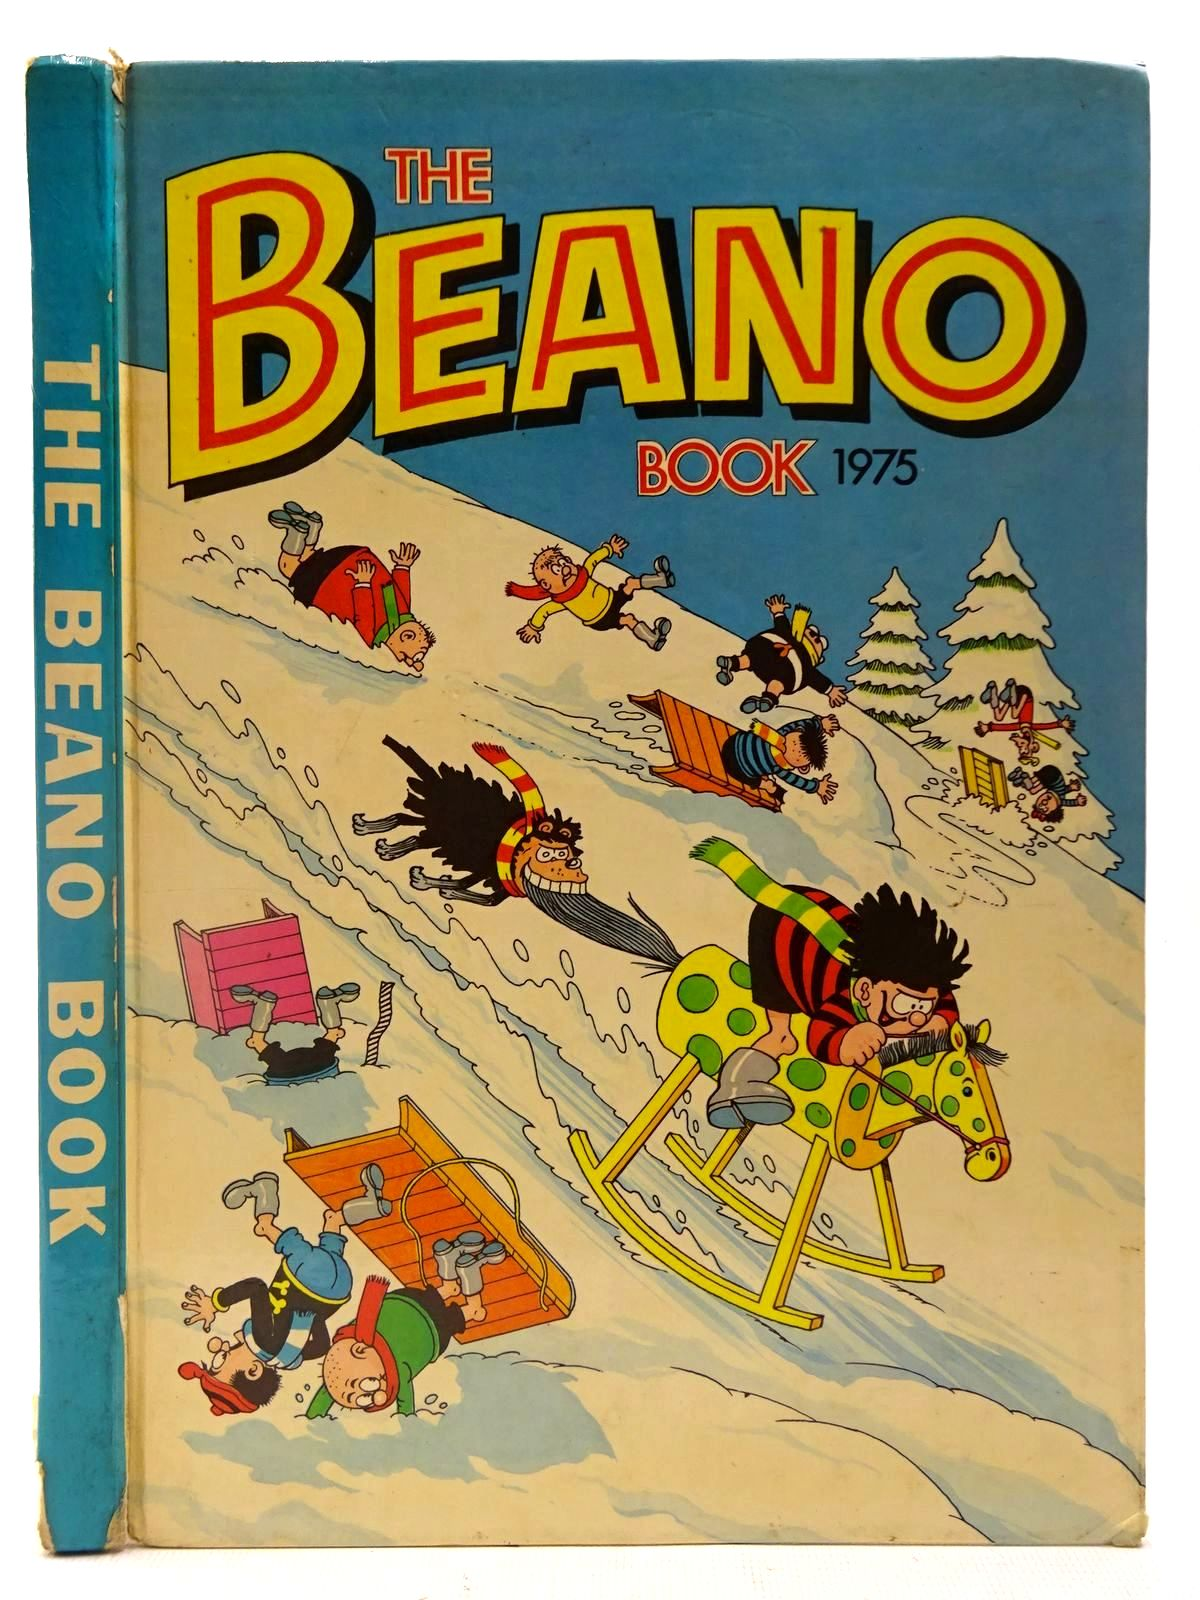 Photo of THE BEANO BOOK 1975 published by D.C. Thomson & Co Ltd. (STOCK CODE: 2127309)  for sale by Stella & Rose's Books